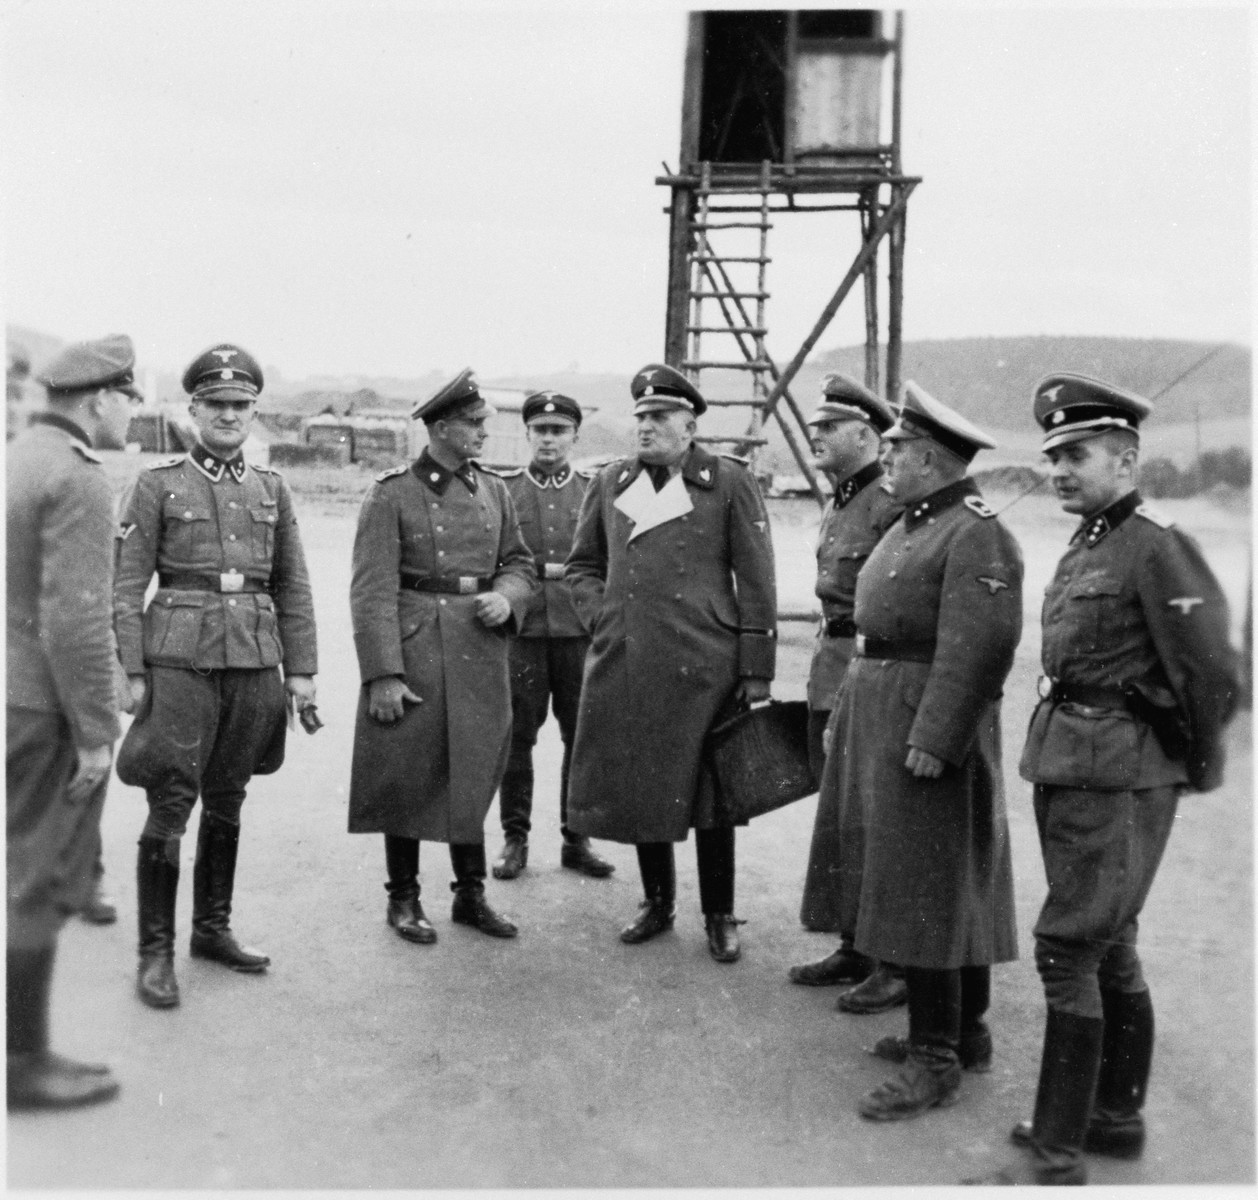 SS-Brigadefuhrer Richard Gluecks, the Inspector of Concentration Camps, stands carrying a briefcase with other SS men on an official visit to Gross-Rosen.  This was probably taken shortly before Gross-Rosen became an independent concentration camp.  Prior to May 1, 1944 it was a sub-camp of Sachsenhausen.